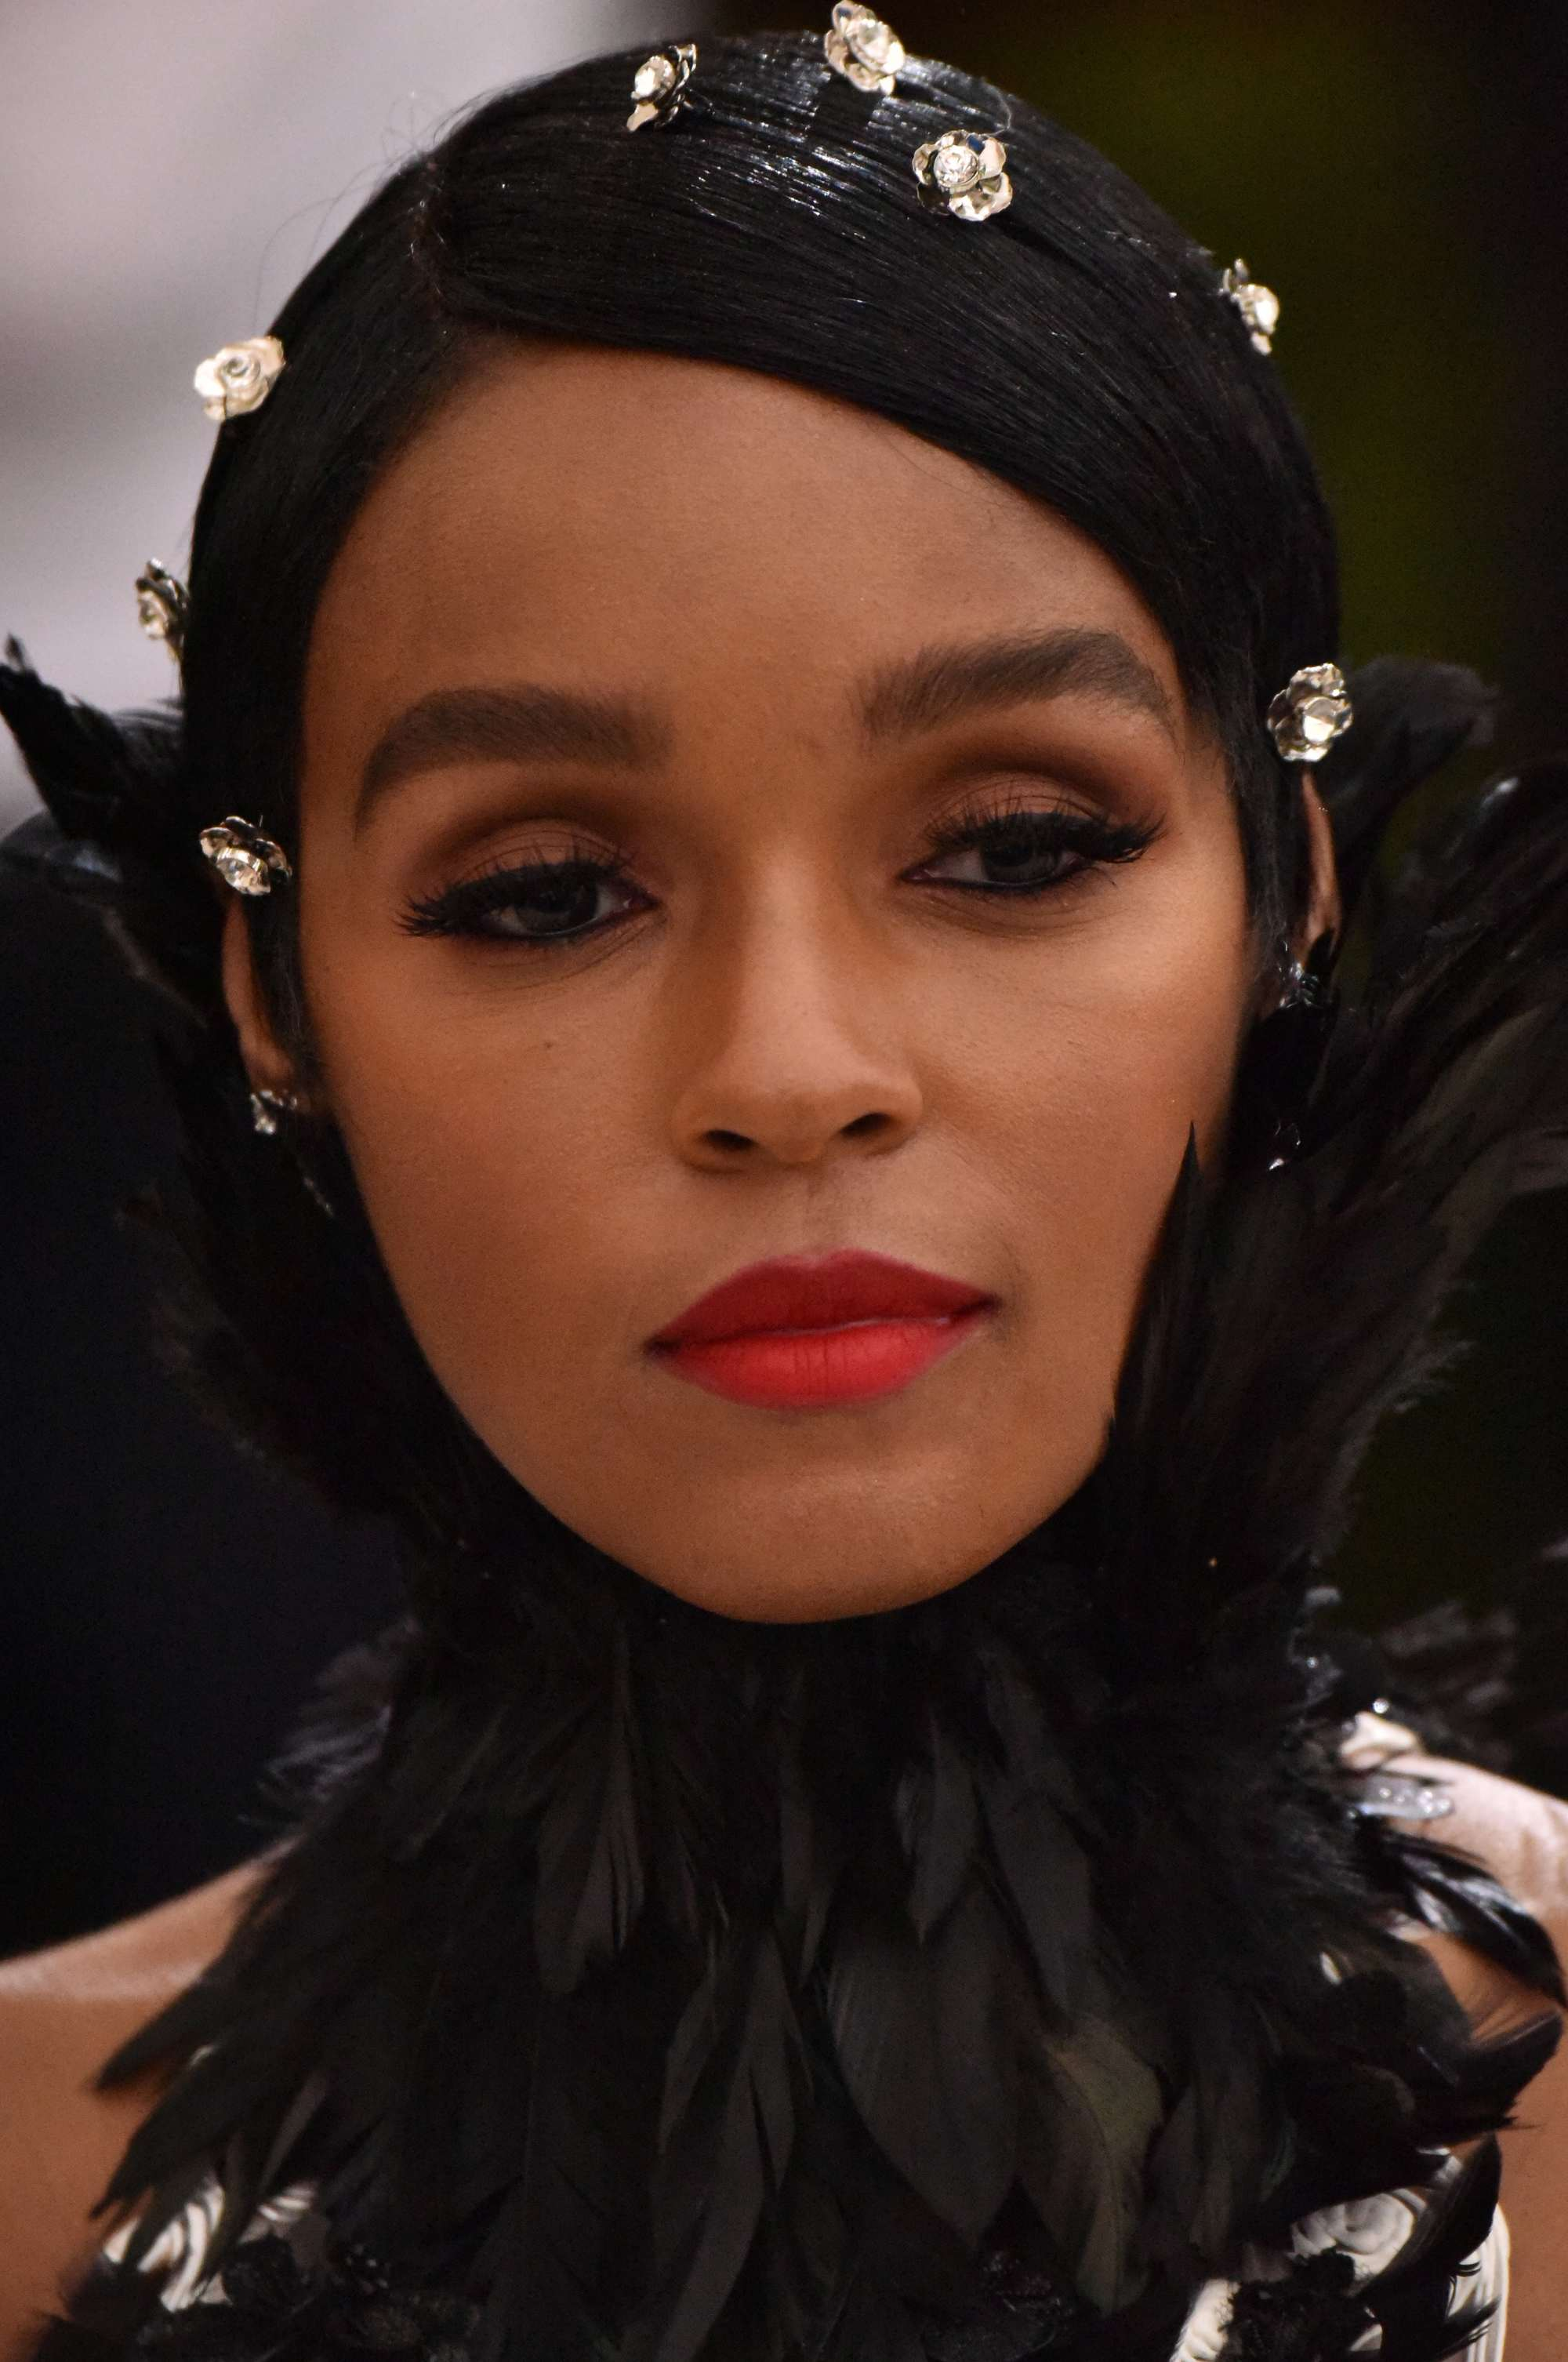 janelle monae with hair stickers in her hair at the met gala